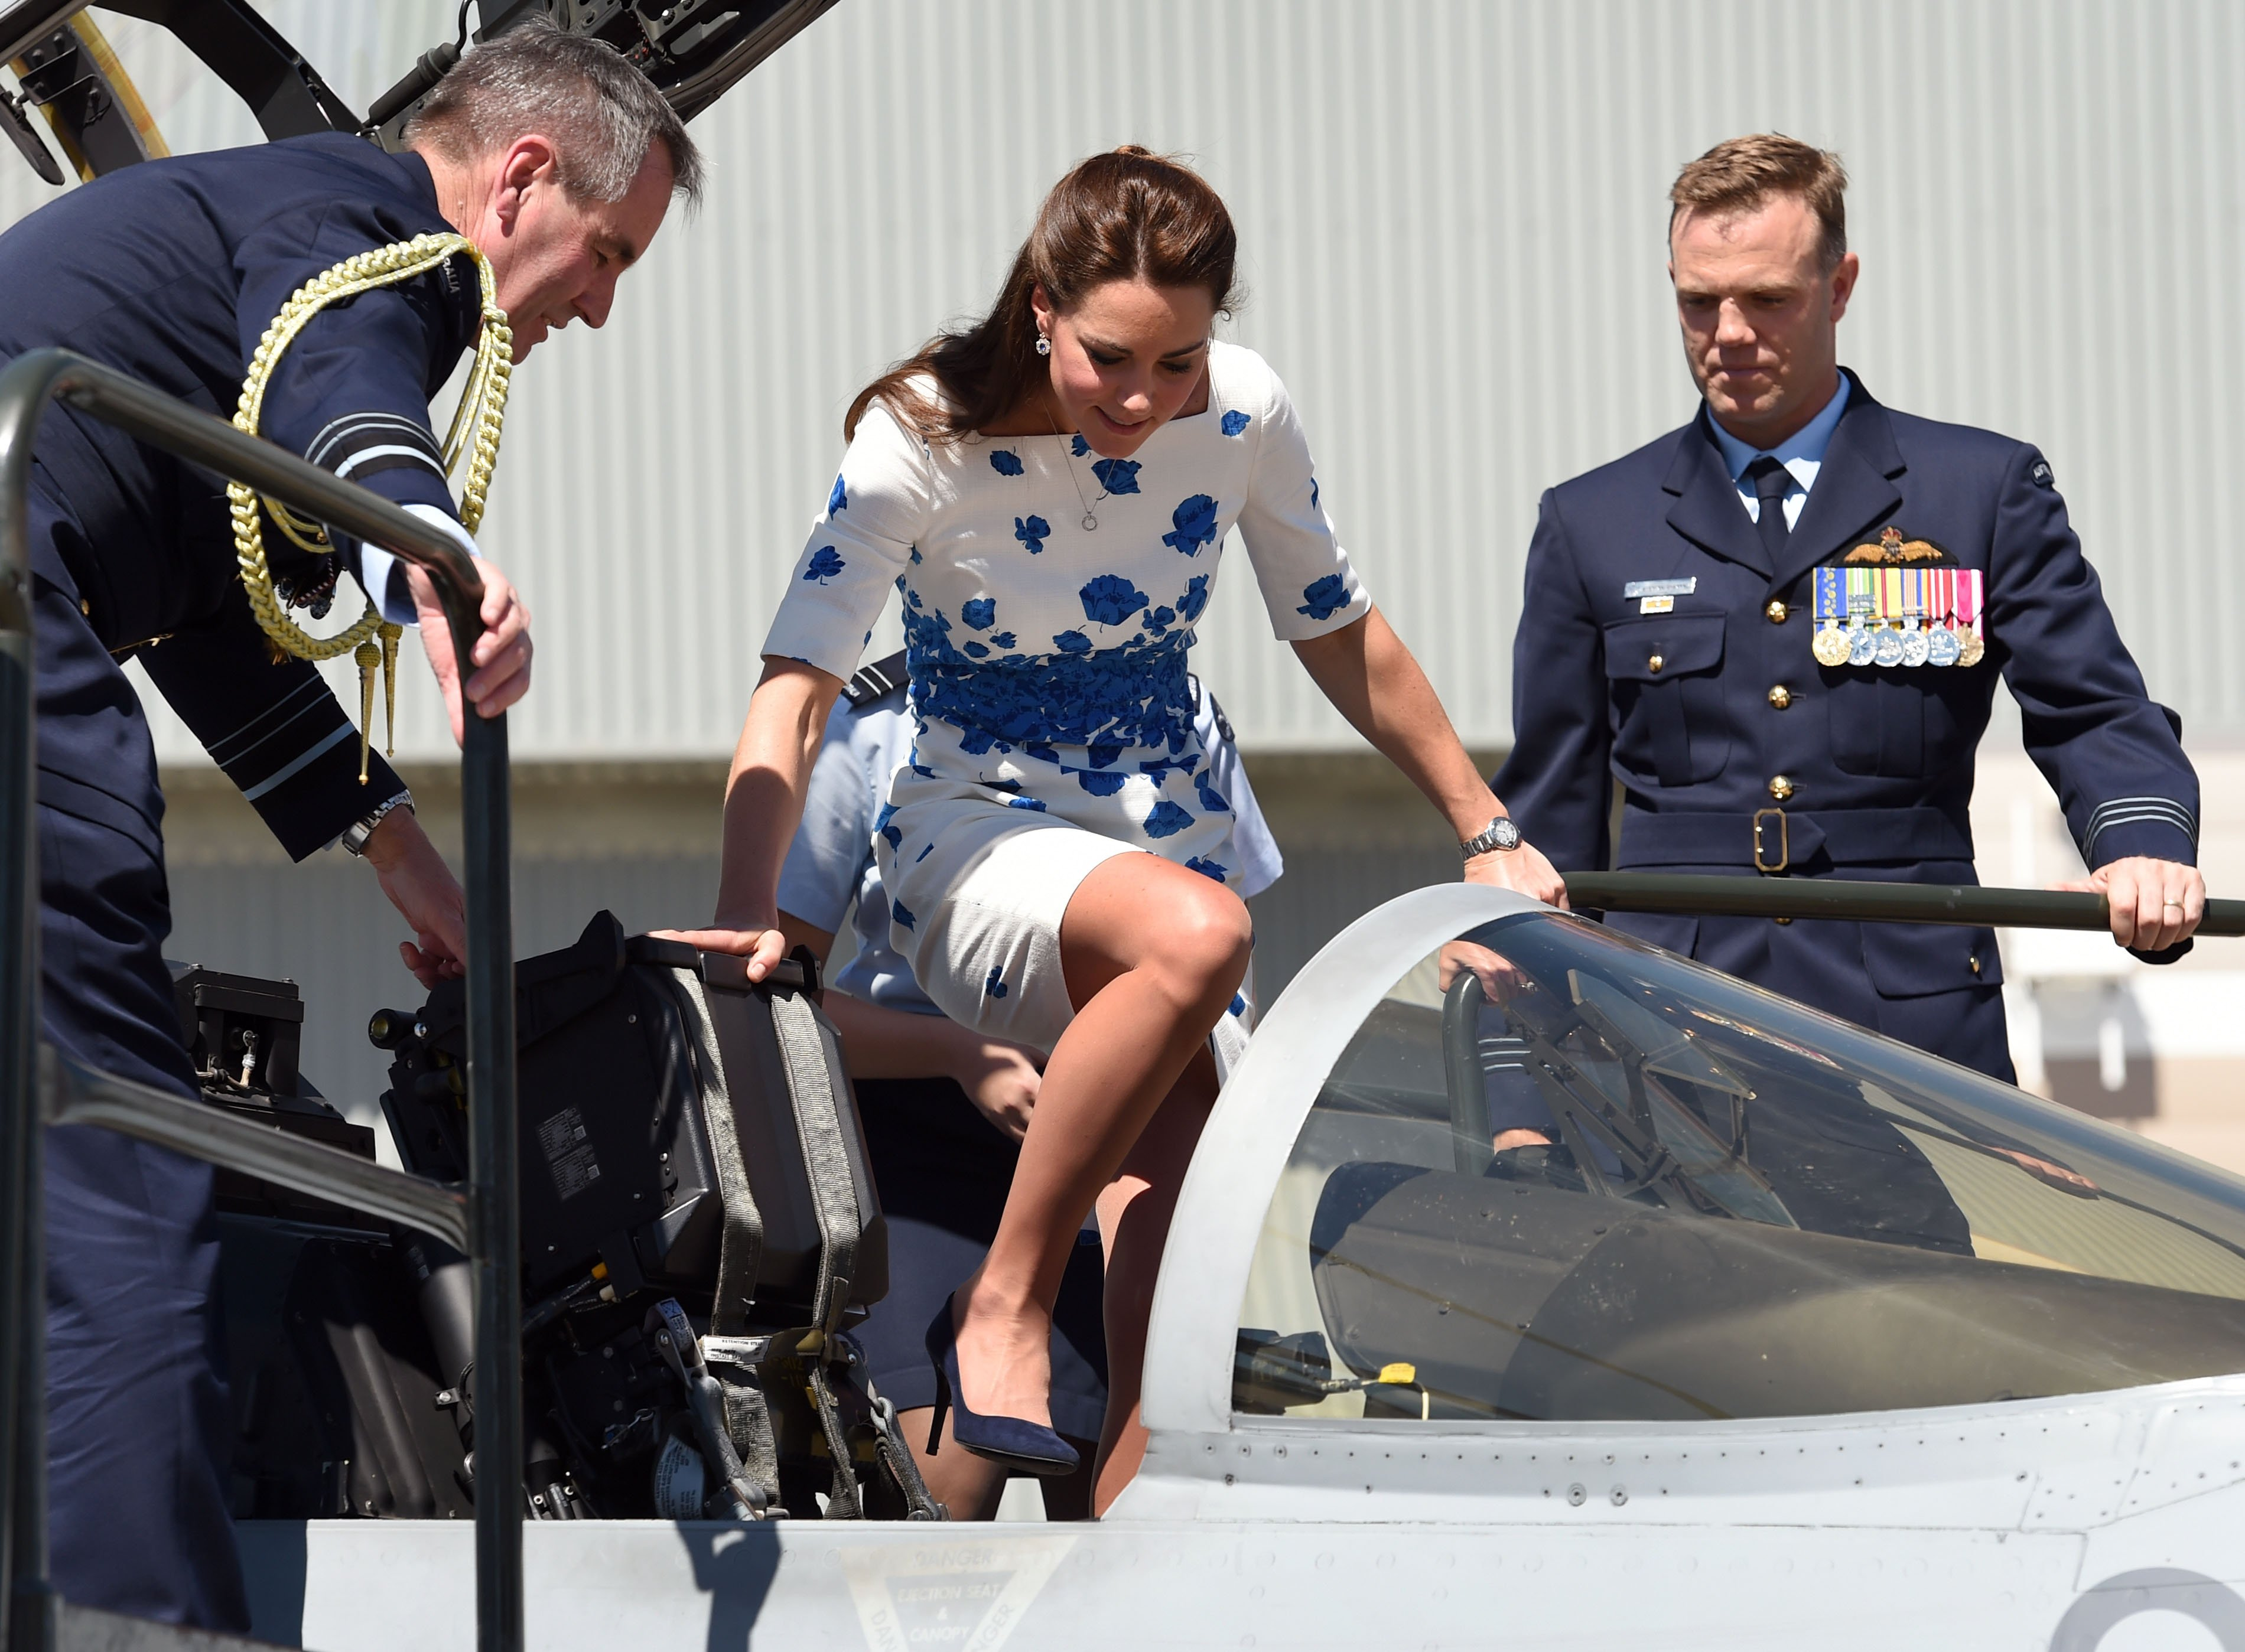 <strong>Straighten Up and Fly Right</strong>Flanked by Chief of Air Force, Air Marshall Geoff Brown (left), and Commanding Officer of Number 1 Squadron , Wing Commander Stephen Chappell (right), Catherine, the Duchess of Cambridge, makes her way into the cockpit of a RAAF Super Hornet of 1 Squadron at the Royal Australian Airforce Base at Amberley on April 19, 2014 in Brisbane, Australia.